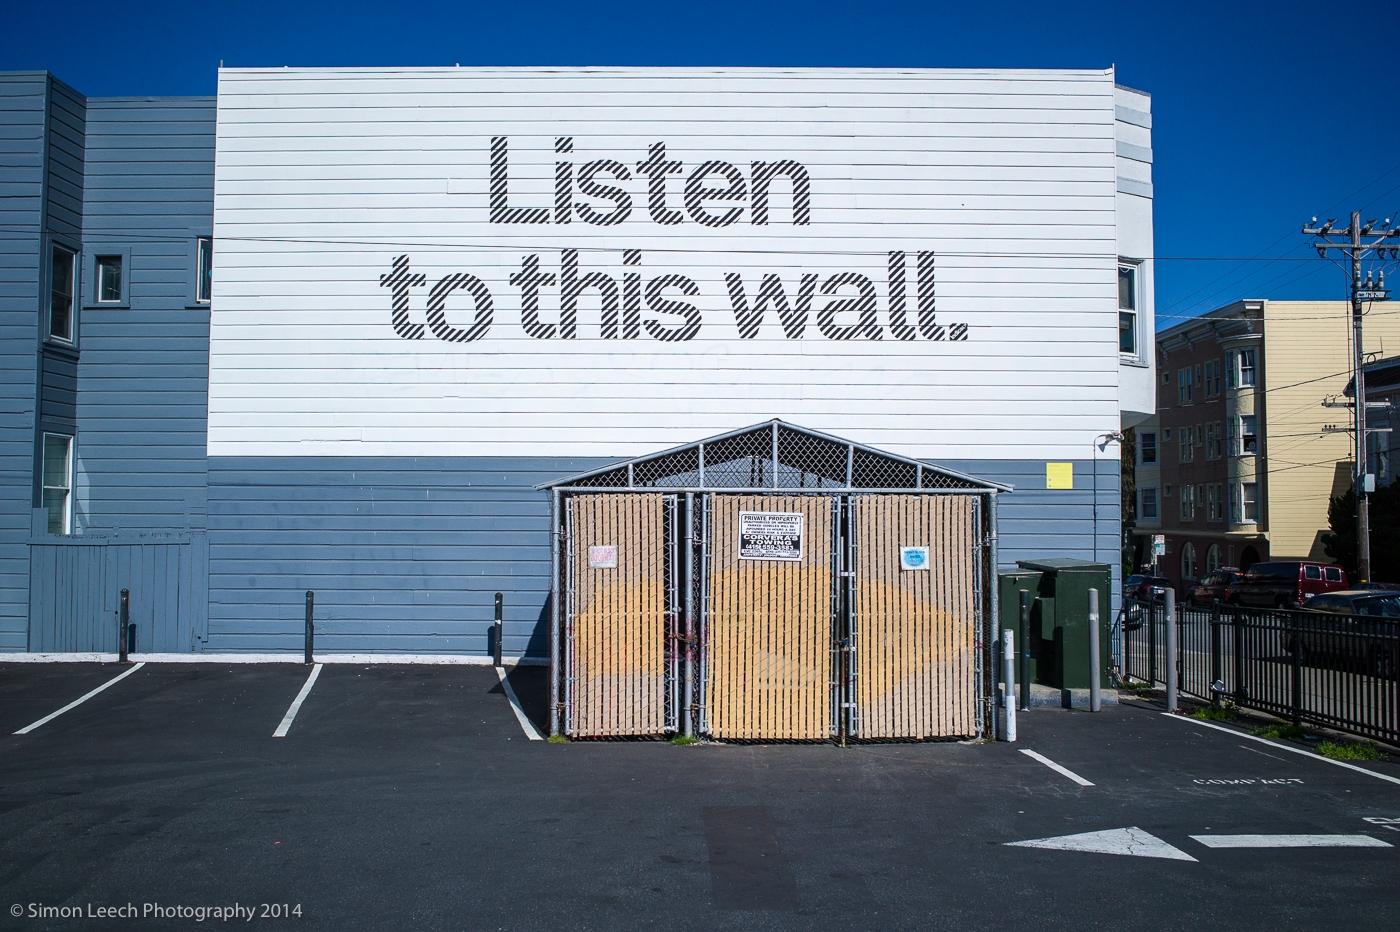 Listen to this wall, Haight Ashbury